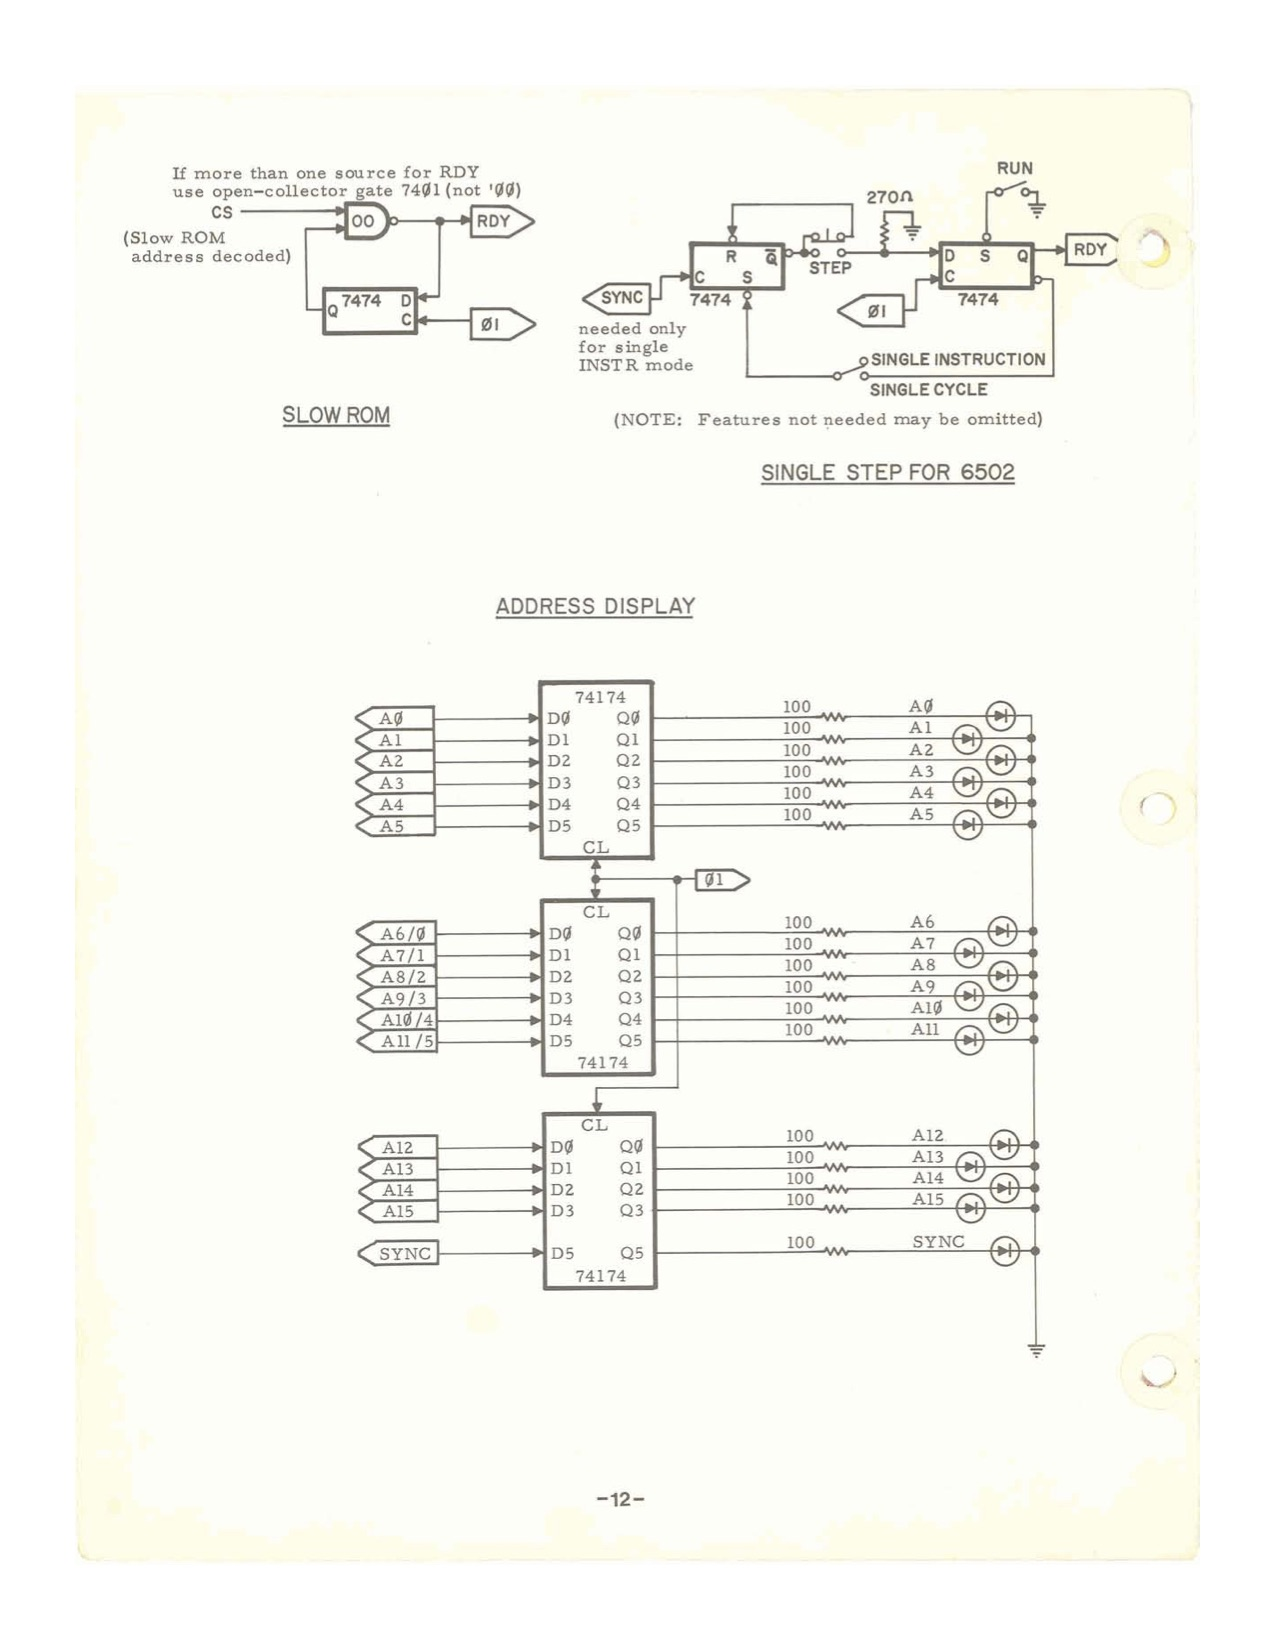 6502 Single Step and address display schematics from Apple I manual